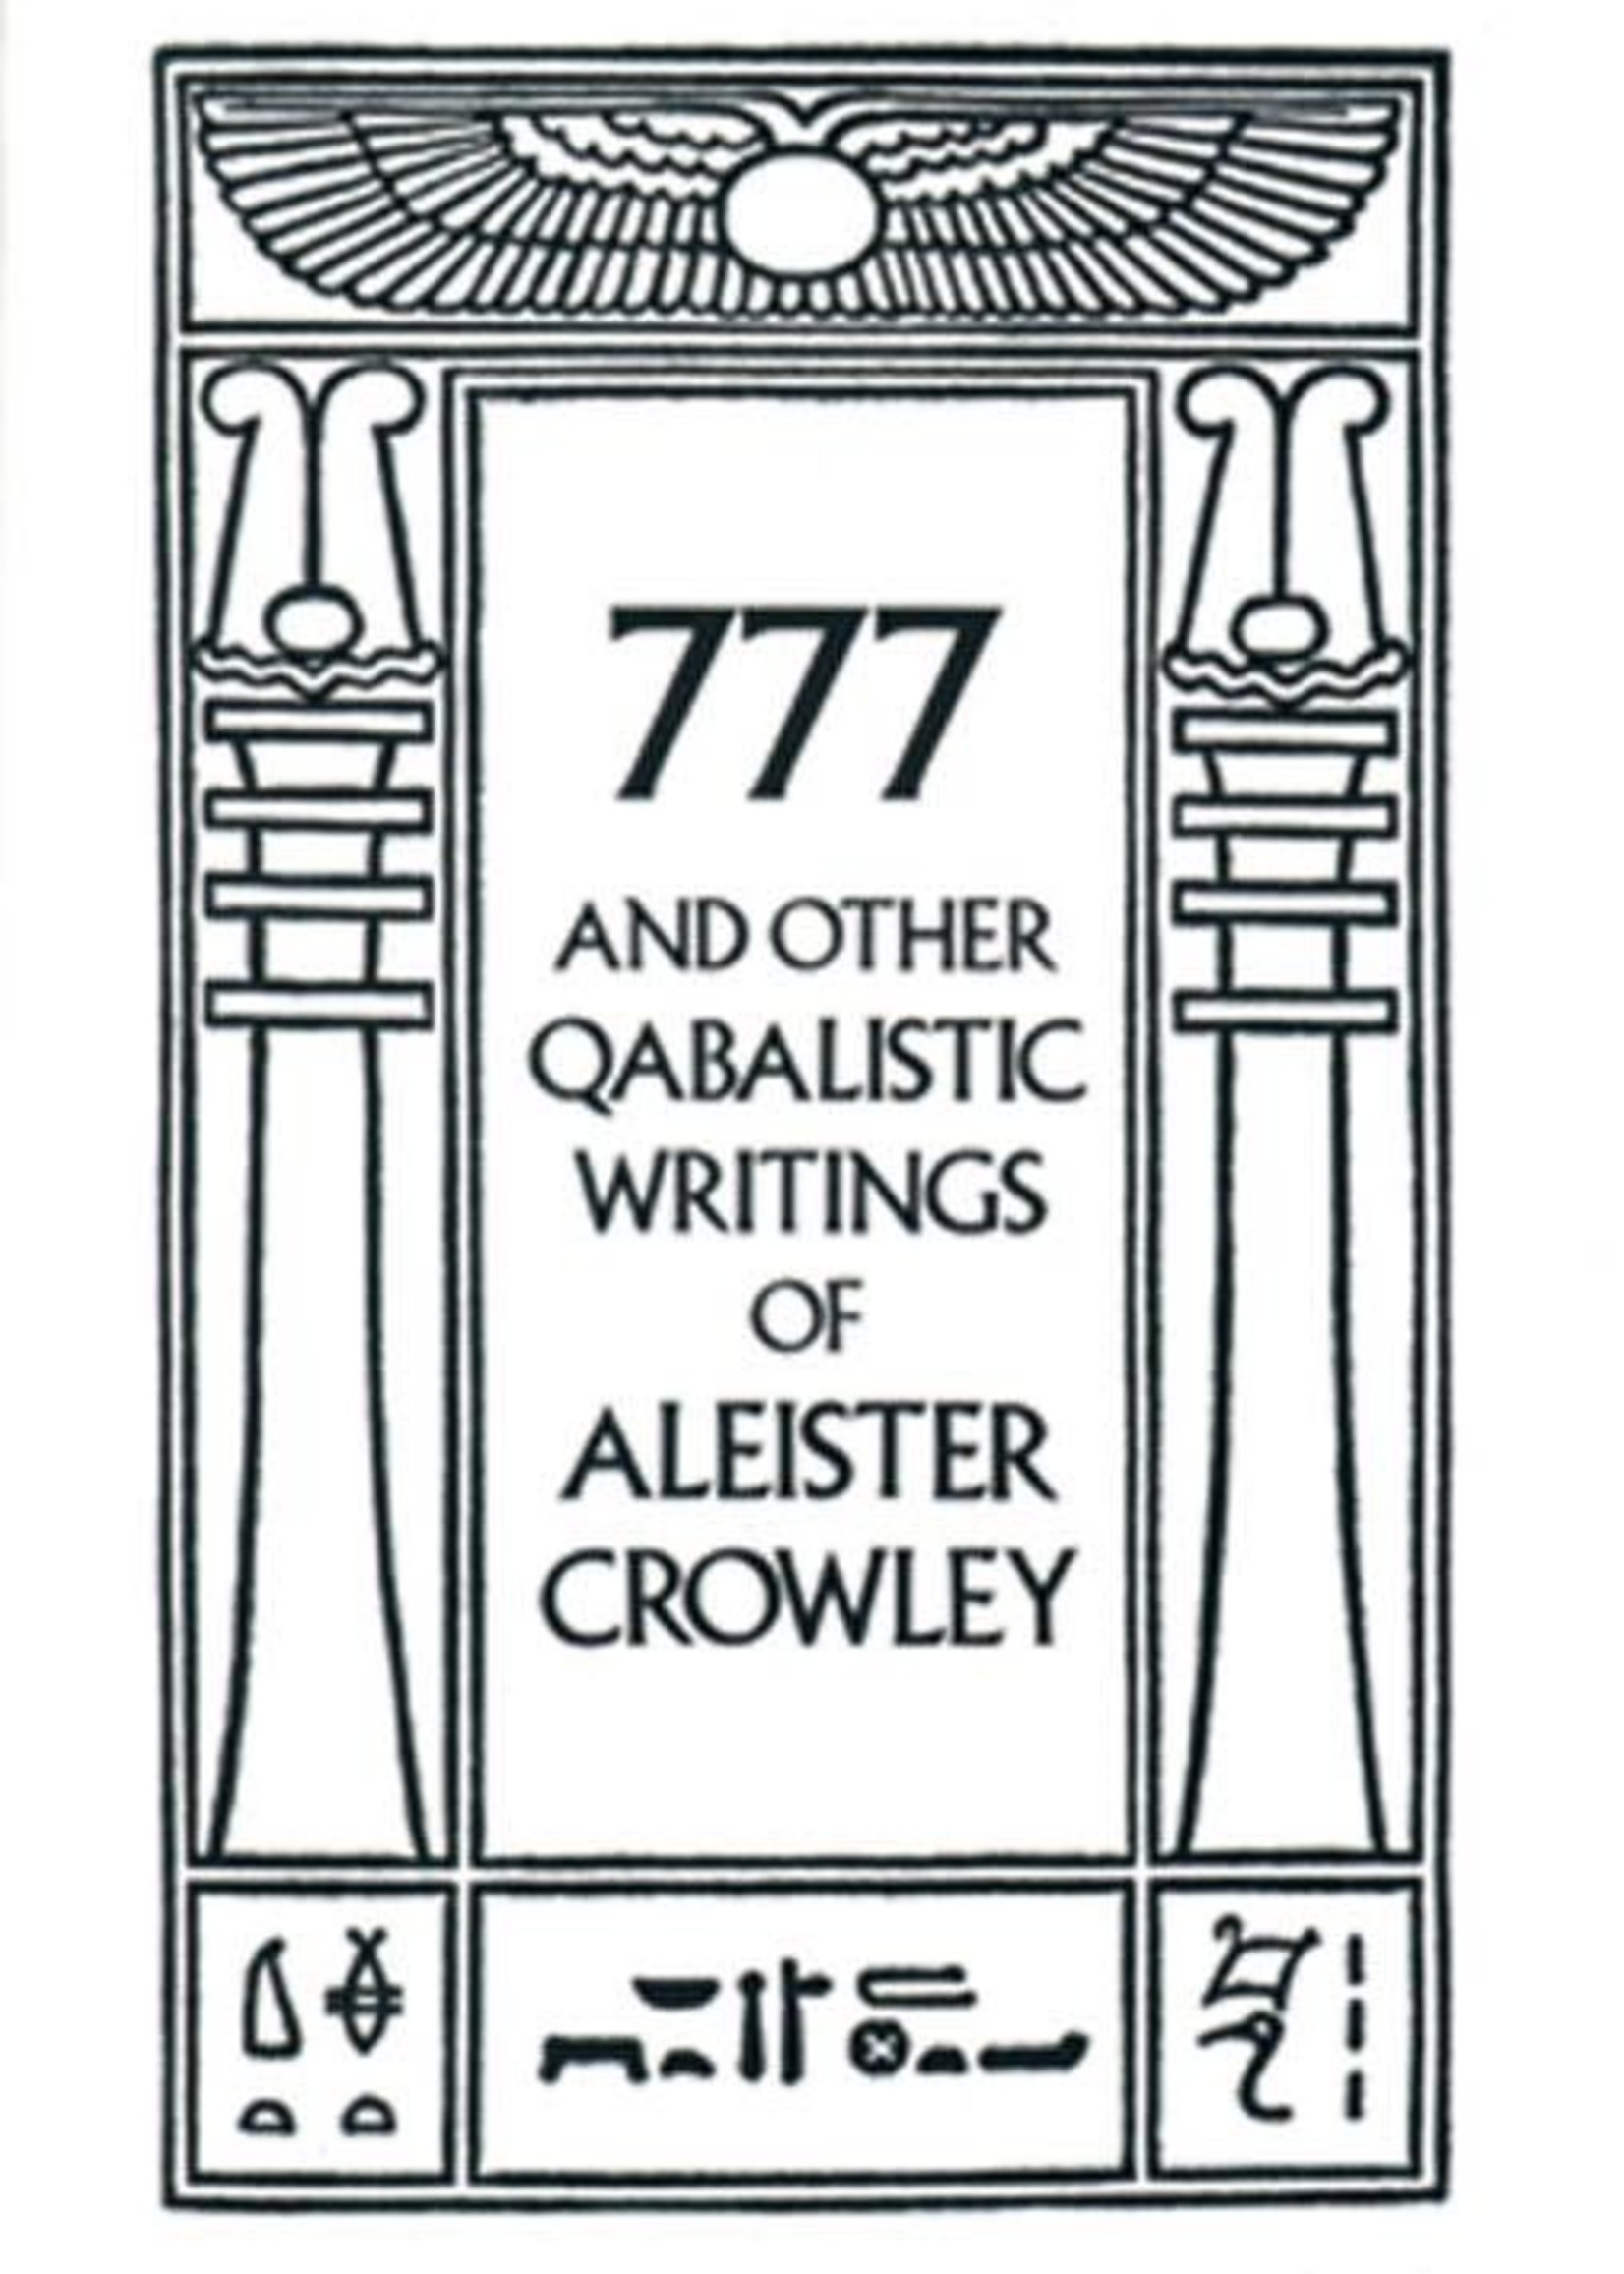 777 and other Qabalistic Writings (Aleister Crowley)